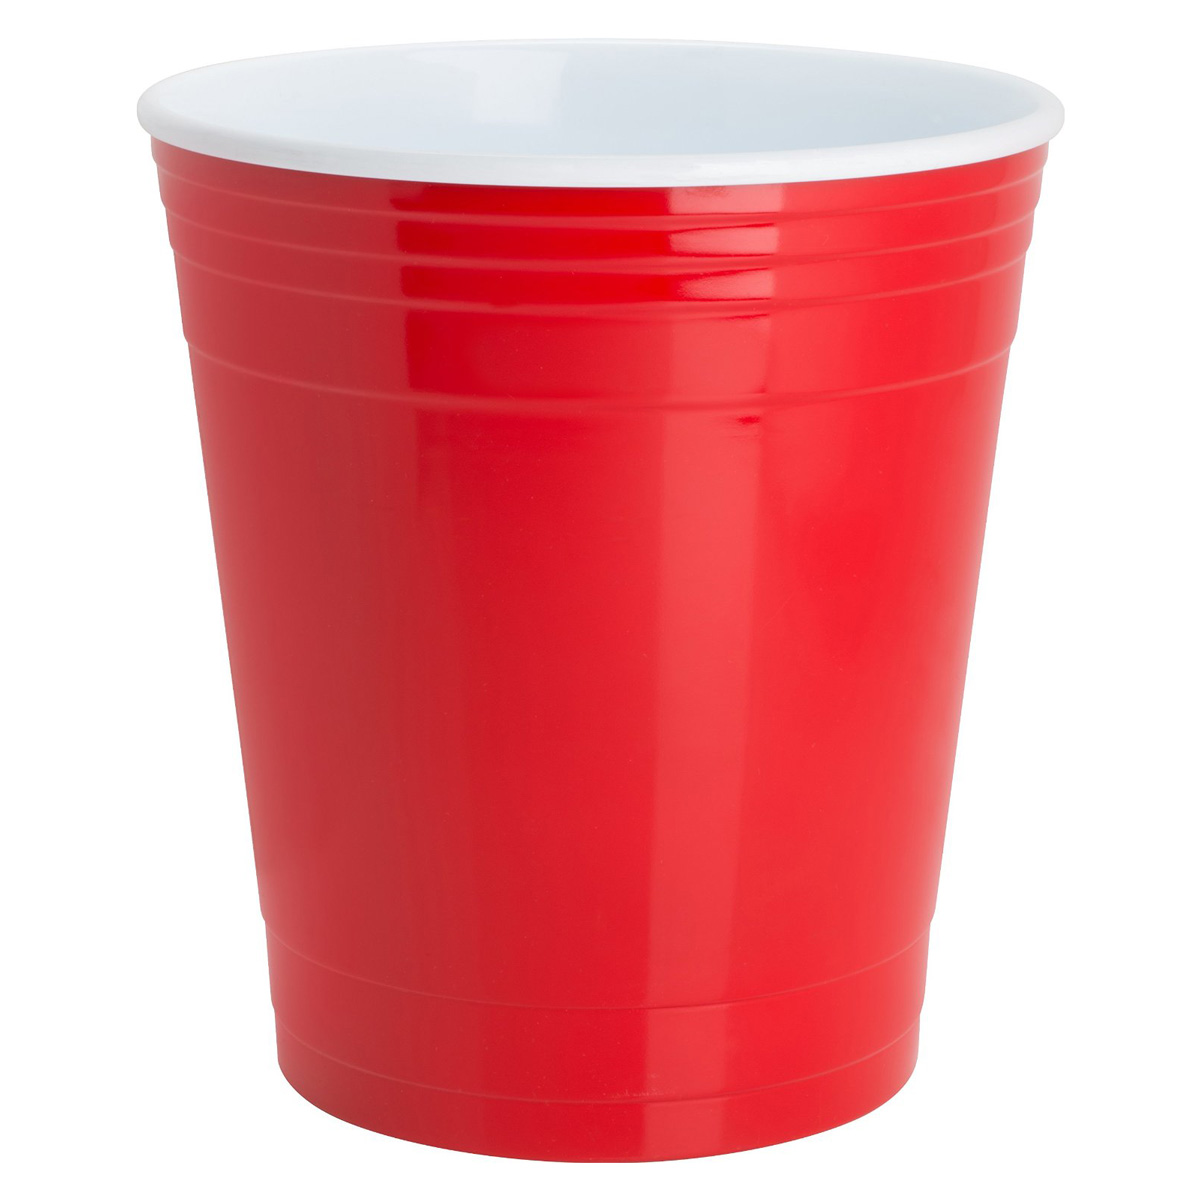 Hot Coffee Cup >> Red Party Cup Waste Basket - The Green Head